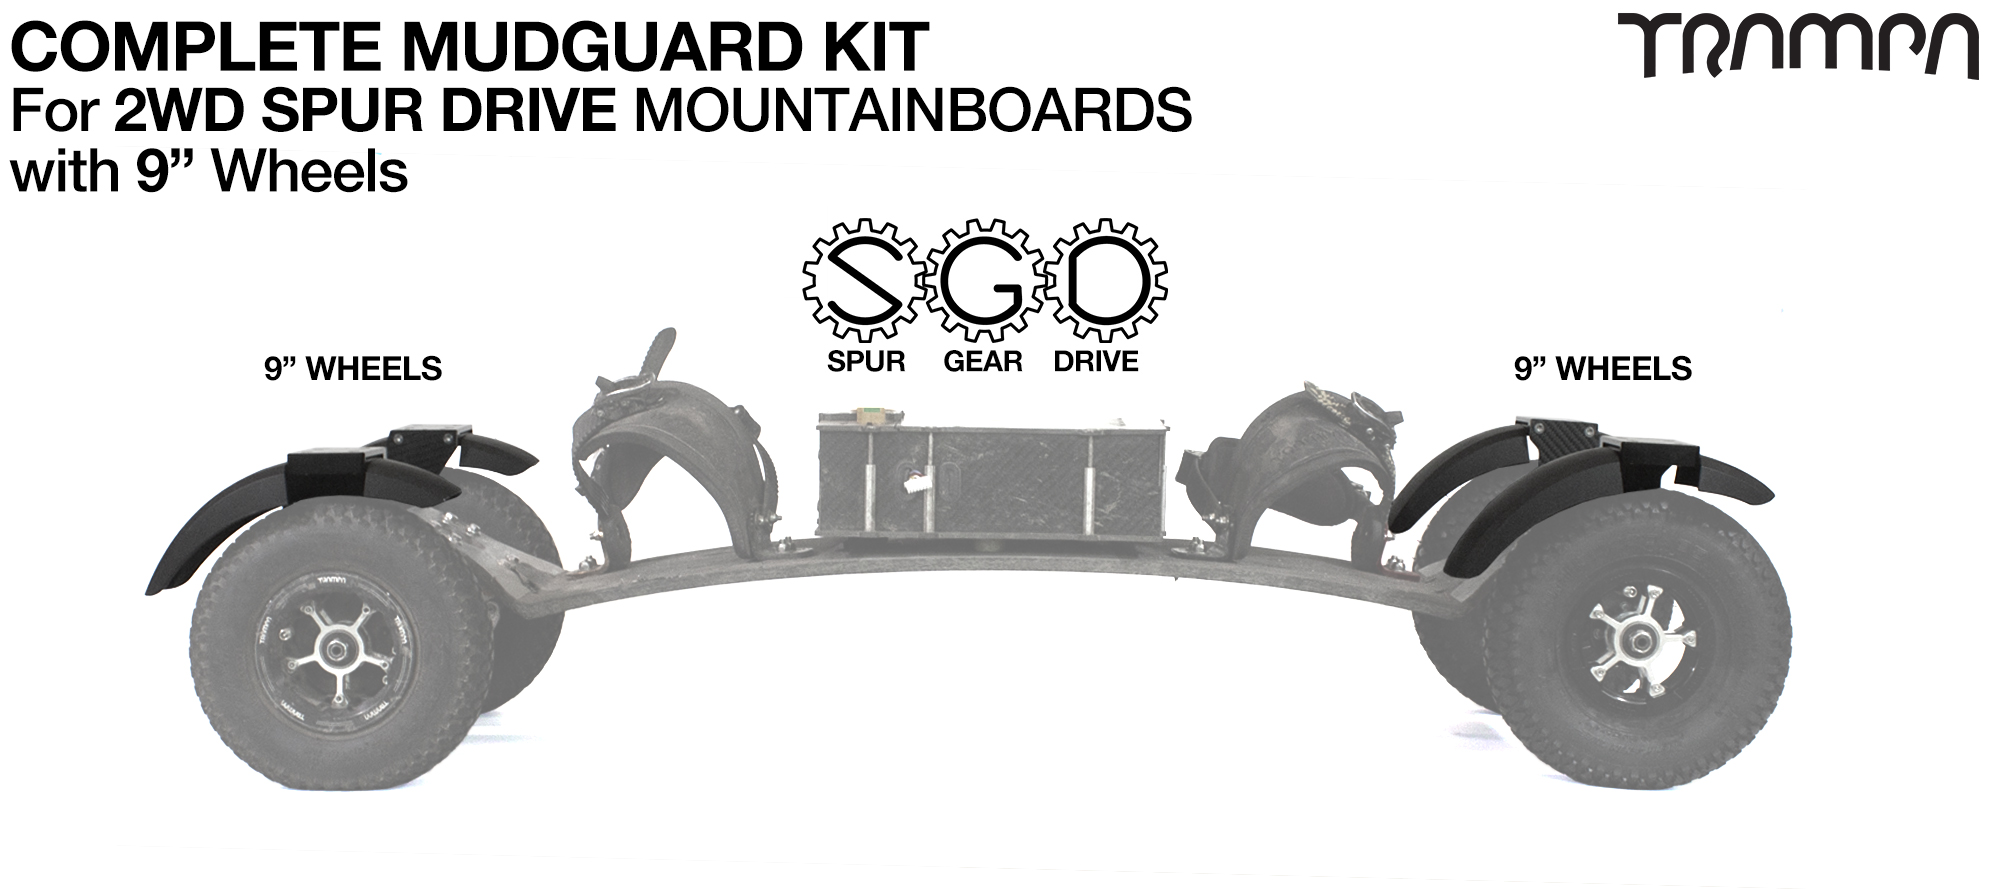 """Full Mudguard Kit for 2WD SPUR GEAR DRIVE Mountainboards - 9"""" Wheels All round"""